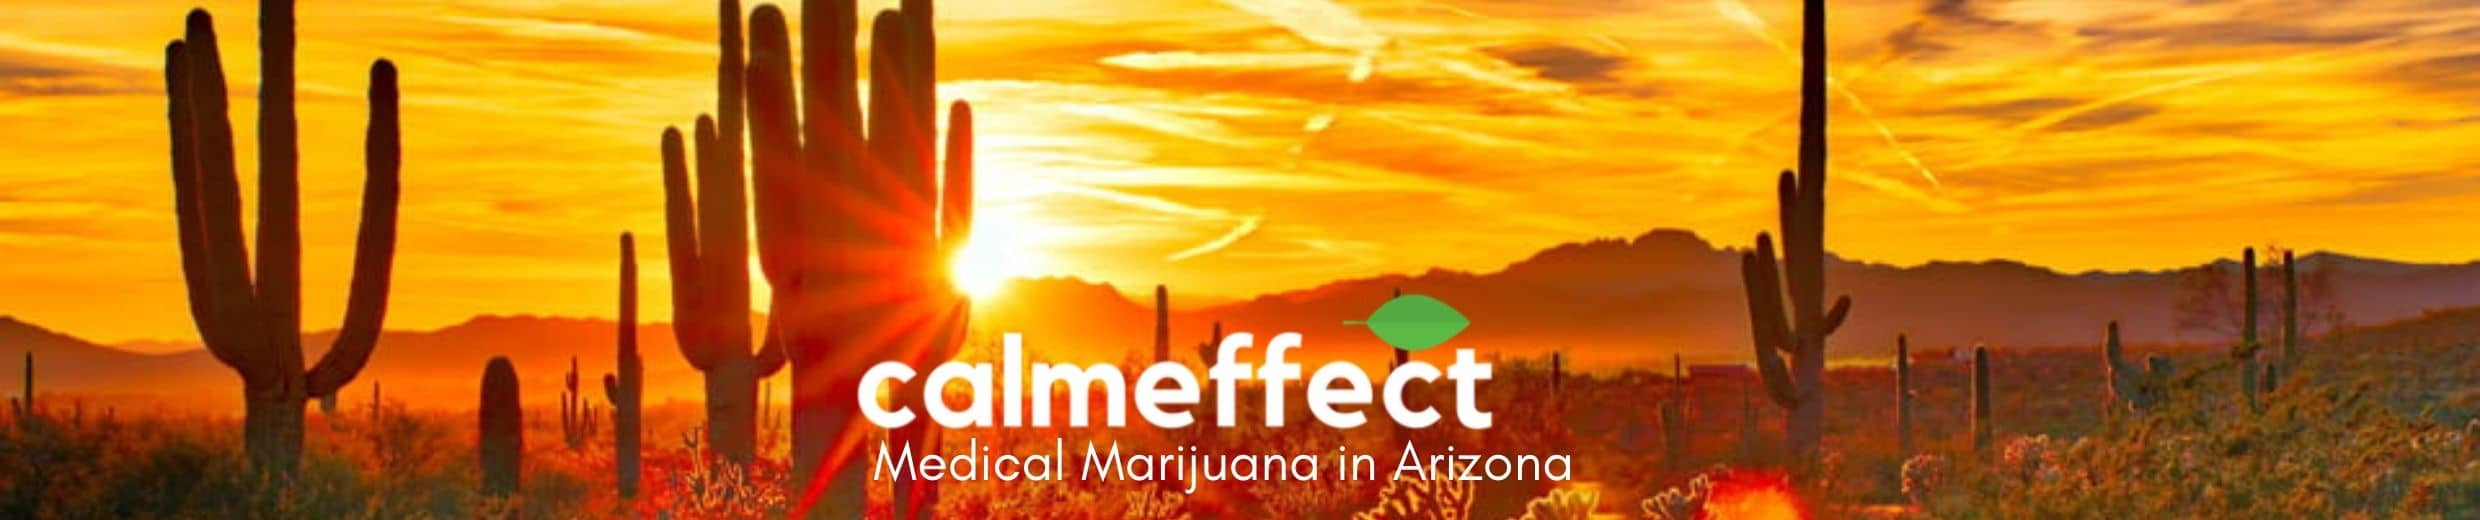 Medical Marijuana in Arizona